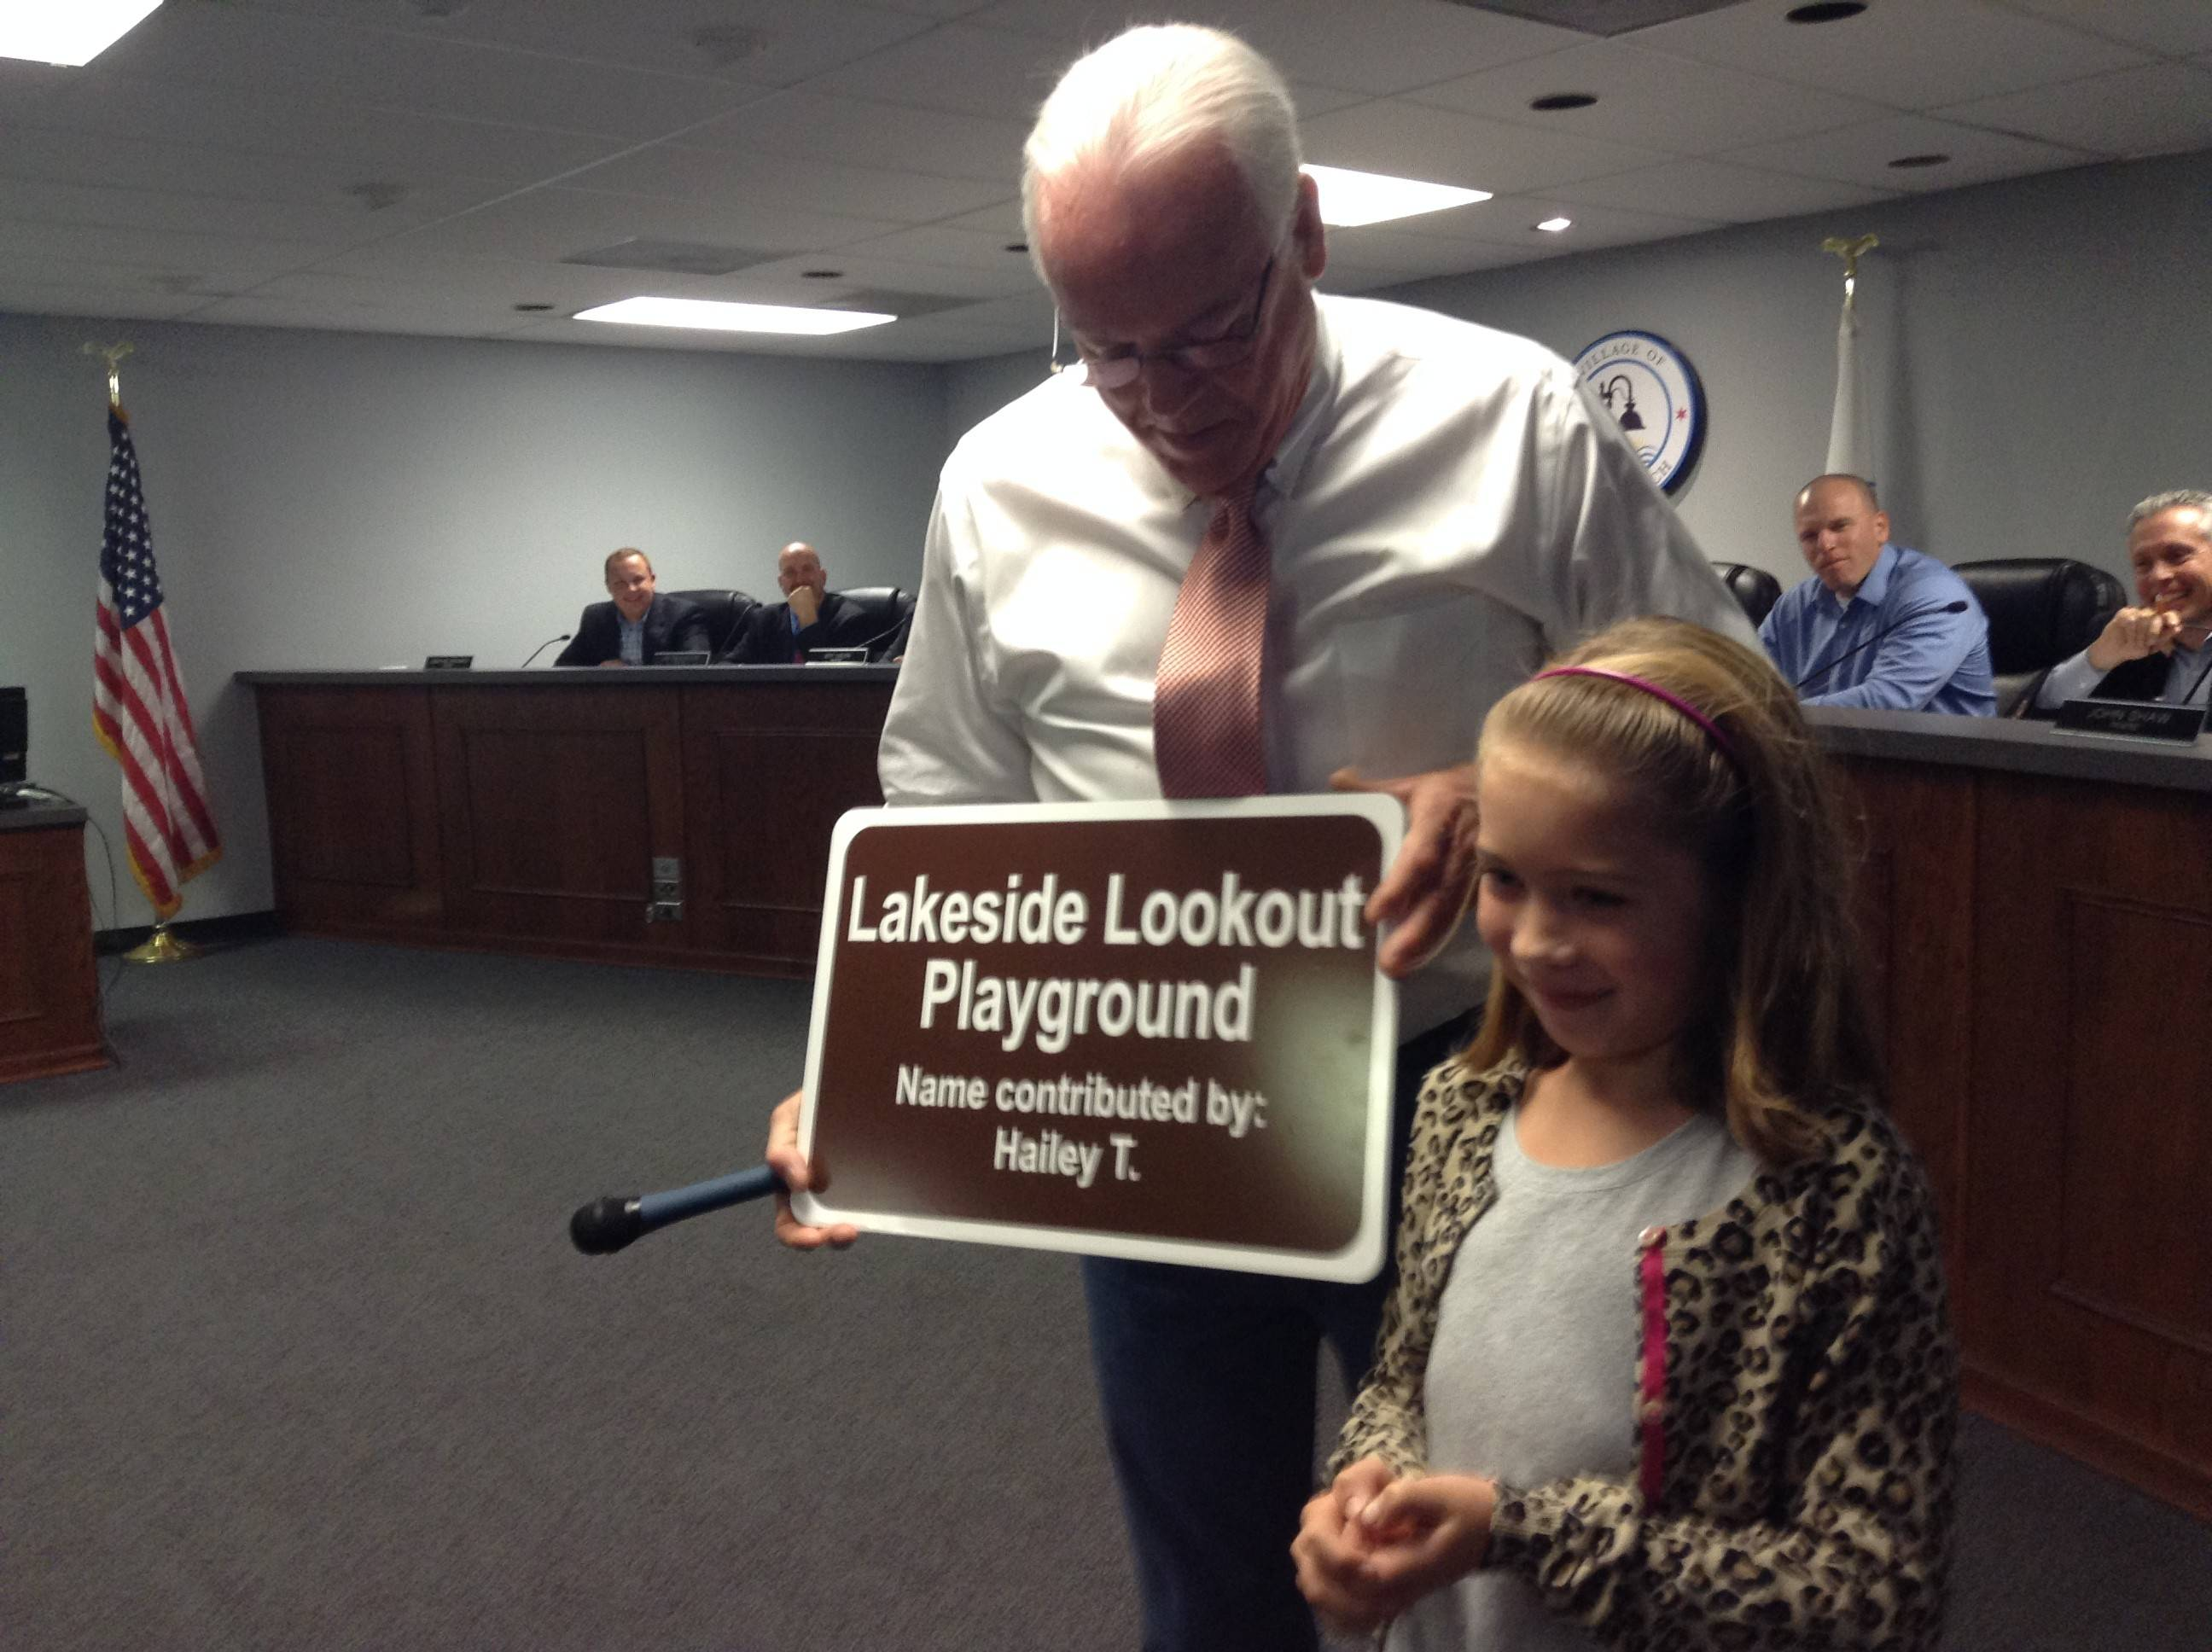 Lake Zurich Mayor Thomas Poynton accepts a sign designating Lakeside Lookout Playground at Paulus Park from 8-year-old Hailey Thorp. Hailey came up with the name and her family donated the sign to the village this week.